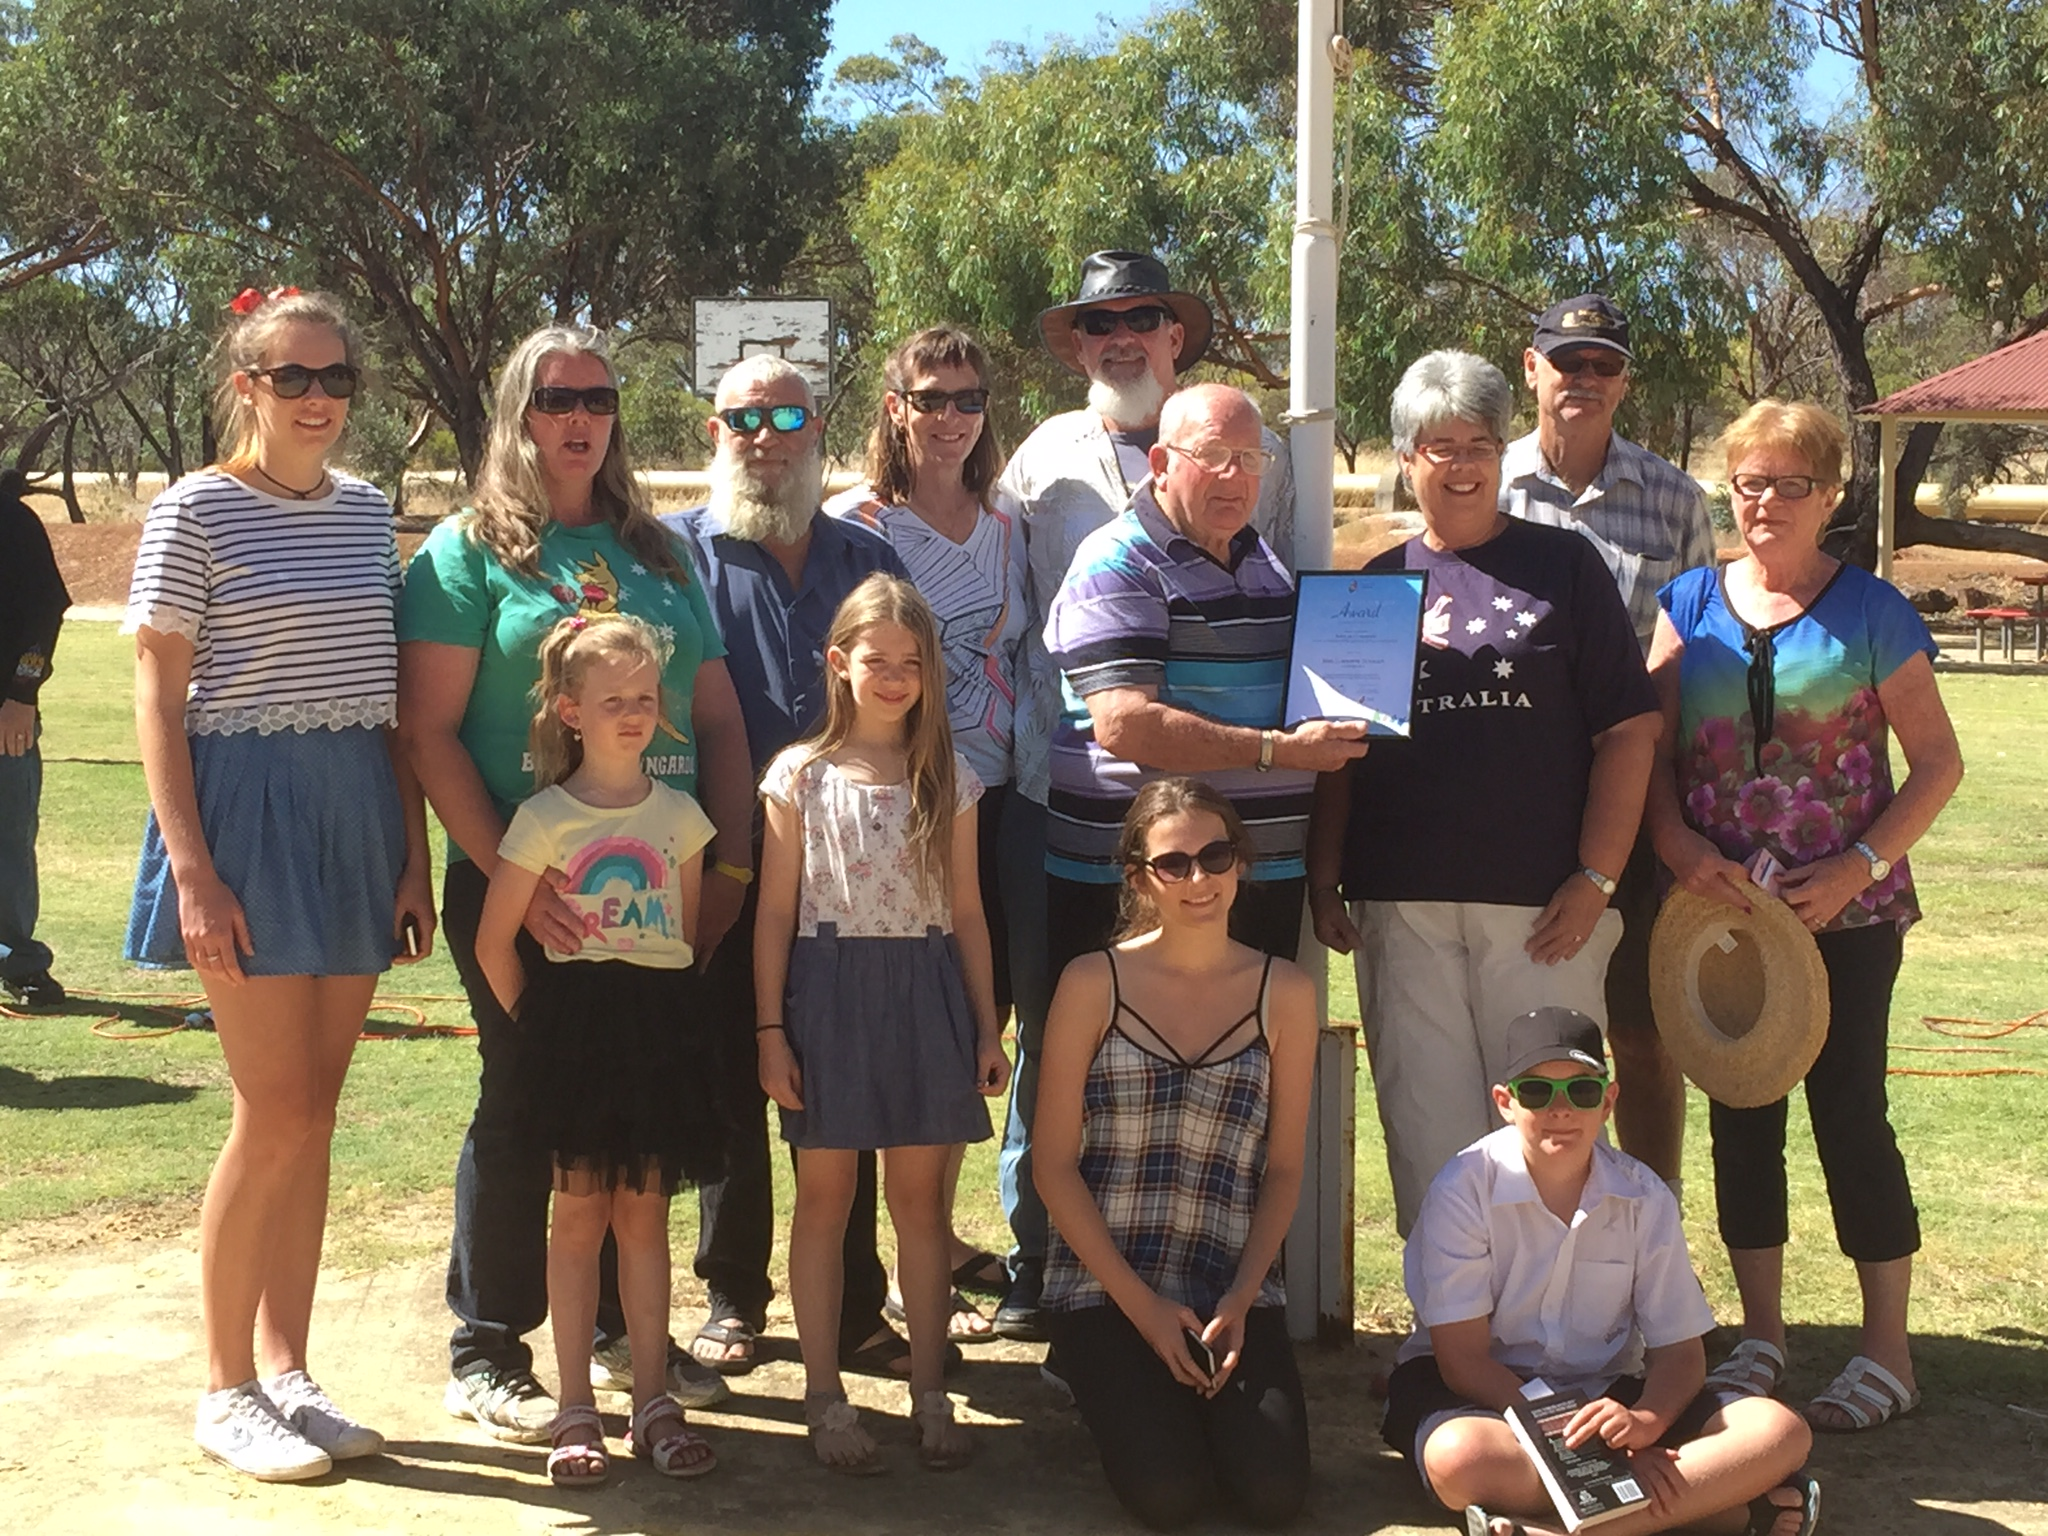 Australia Day in Cunderdin